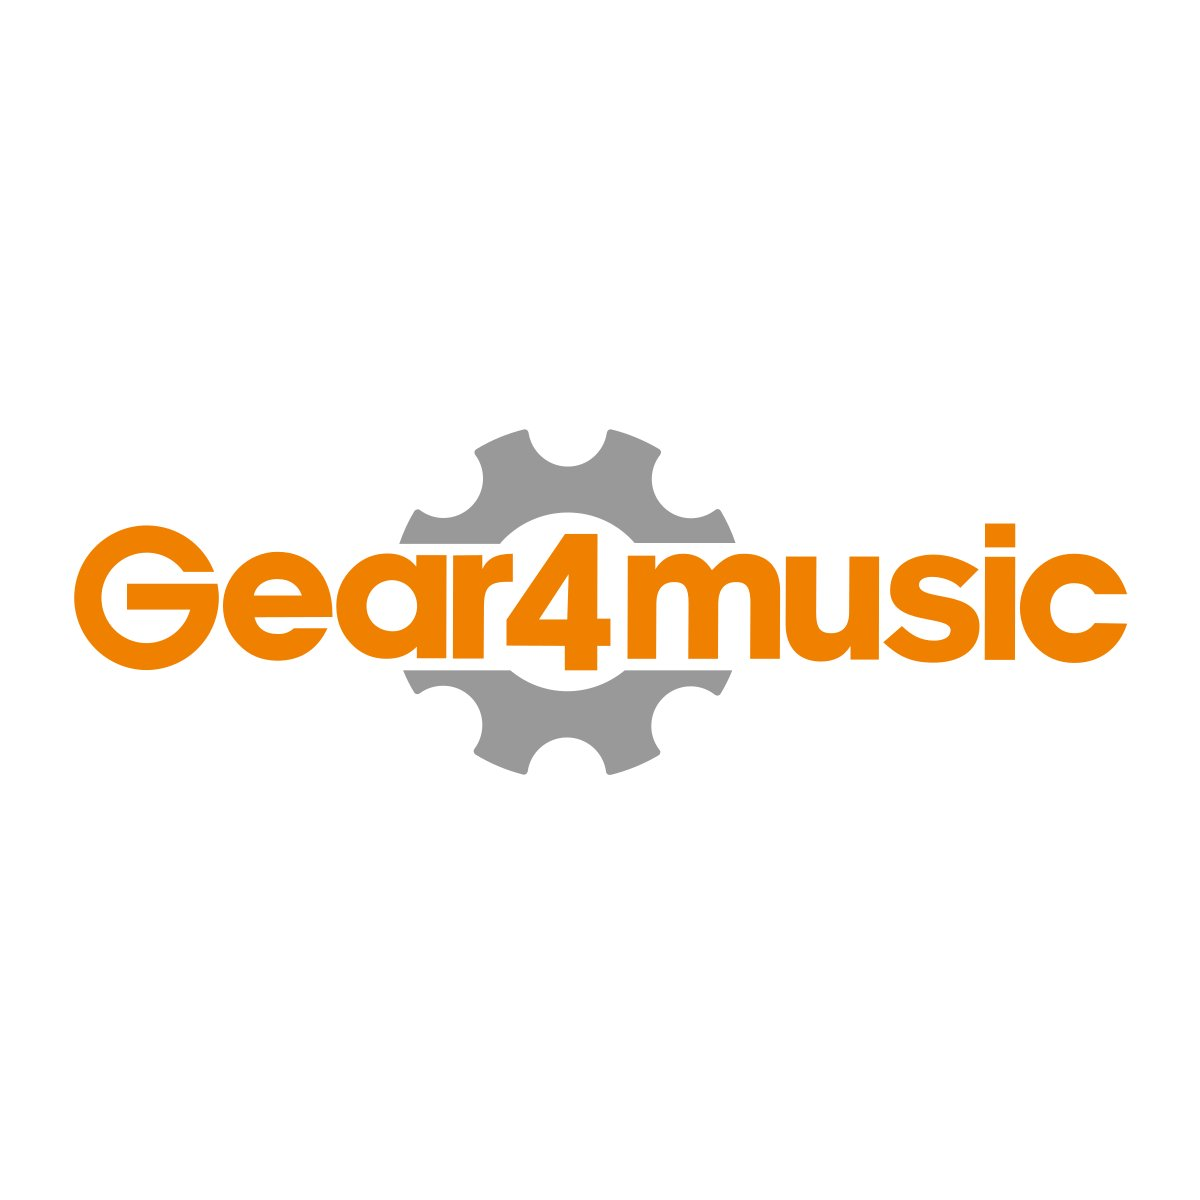 GDP-100 Digital Grand Piano by Gear4music at Gear4music.com